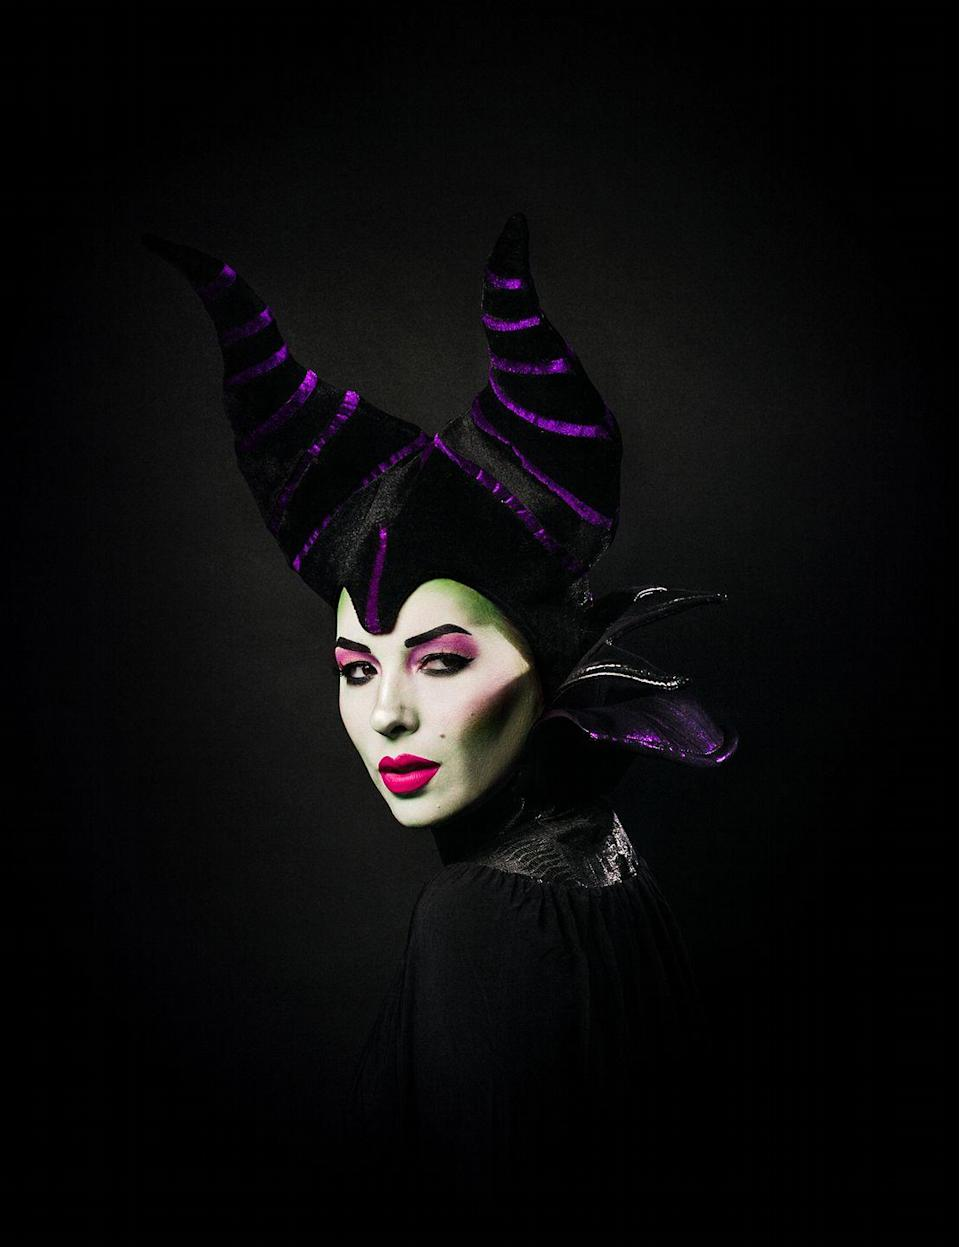 """<p>Sometimes a costume is less about the clothes than the face paint. For this take on Maleficent, blogger Keiko Lynn bought the cape and horns, using the time saved to concentrate on her magnificent makeup.</p><p><strong>Get the tutorial at <a href=""""https://keikolynn.com/2019/10/disney-villains-halloween-costumes/"""" rel=""""nofollow noopener"""" target=""""_blank"""" data-ylk=""""slk:Keiko Lynn"""" class=""""link rapid-noclick-resp"""">Keiko Lynn</a>.</strong></p><p><a class=""""link rapid-noclick-resp"""" href=""""https://www.amazon.com/gp/product/B000H6W2D0/ref=ppx_yo_dt_b_asin_image_o04_s03?tag=syn-yahoo-20&ascsubtag=%5Bartid%7C10050.g.36674692%5Bsrc%7Cyahoo-us"""" rel=""""nofollow noopener"""" target=""""_blank"""" data-ylk=""""slk:SHOP FACE PAINT"""">SHOP FACE PAINT</a><br></p>"""